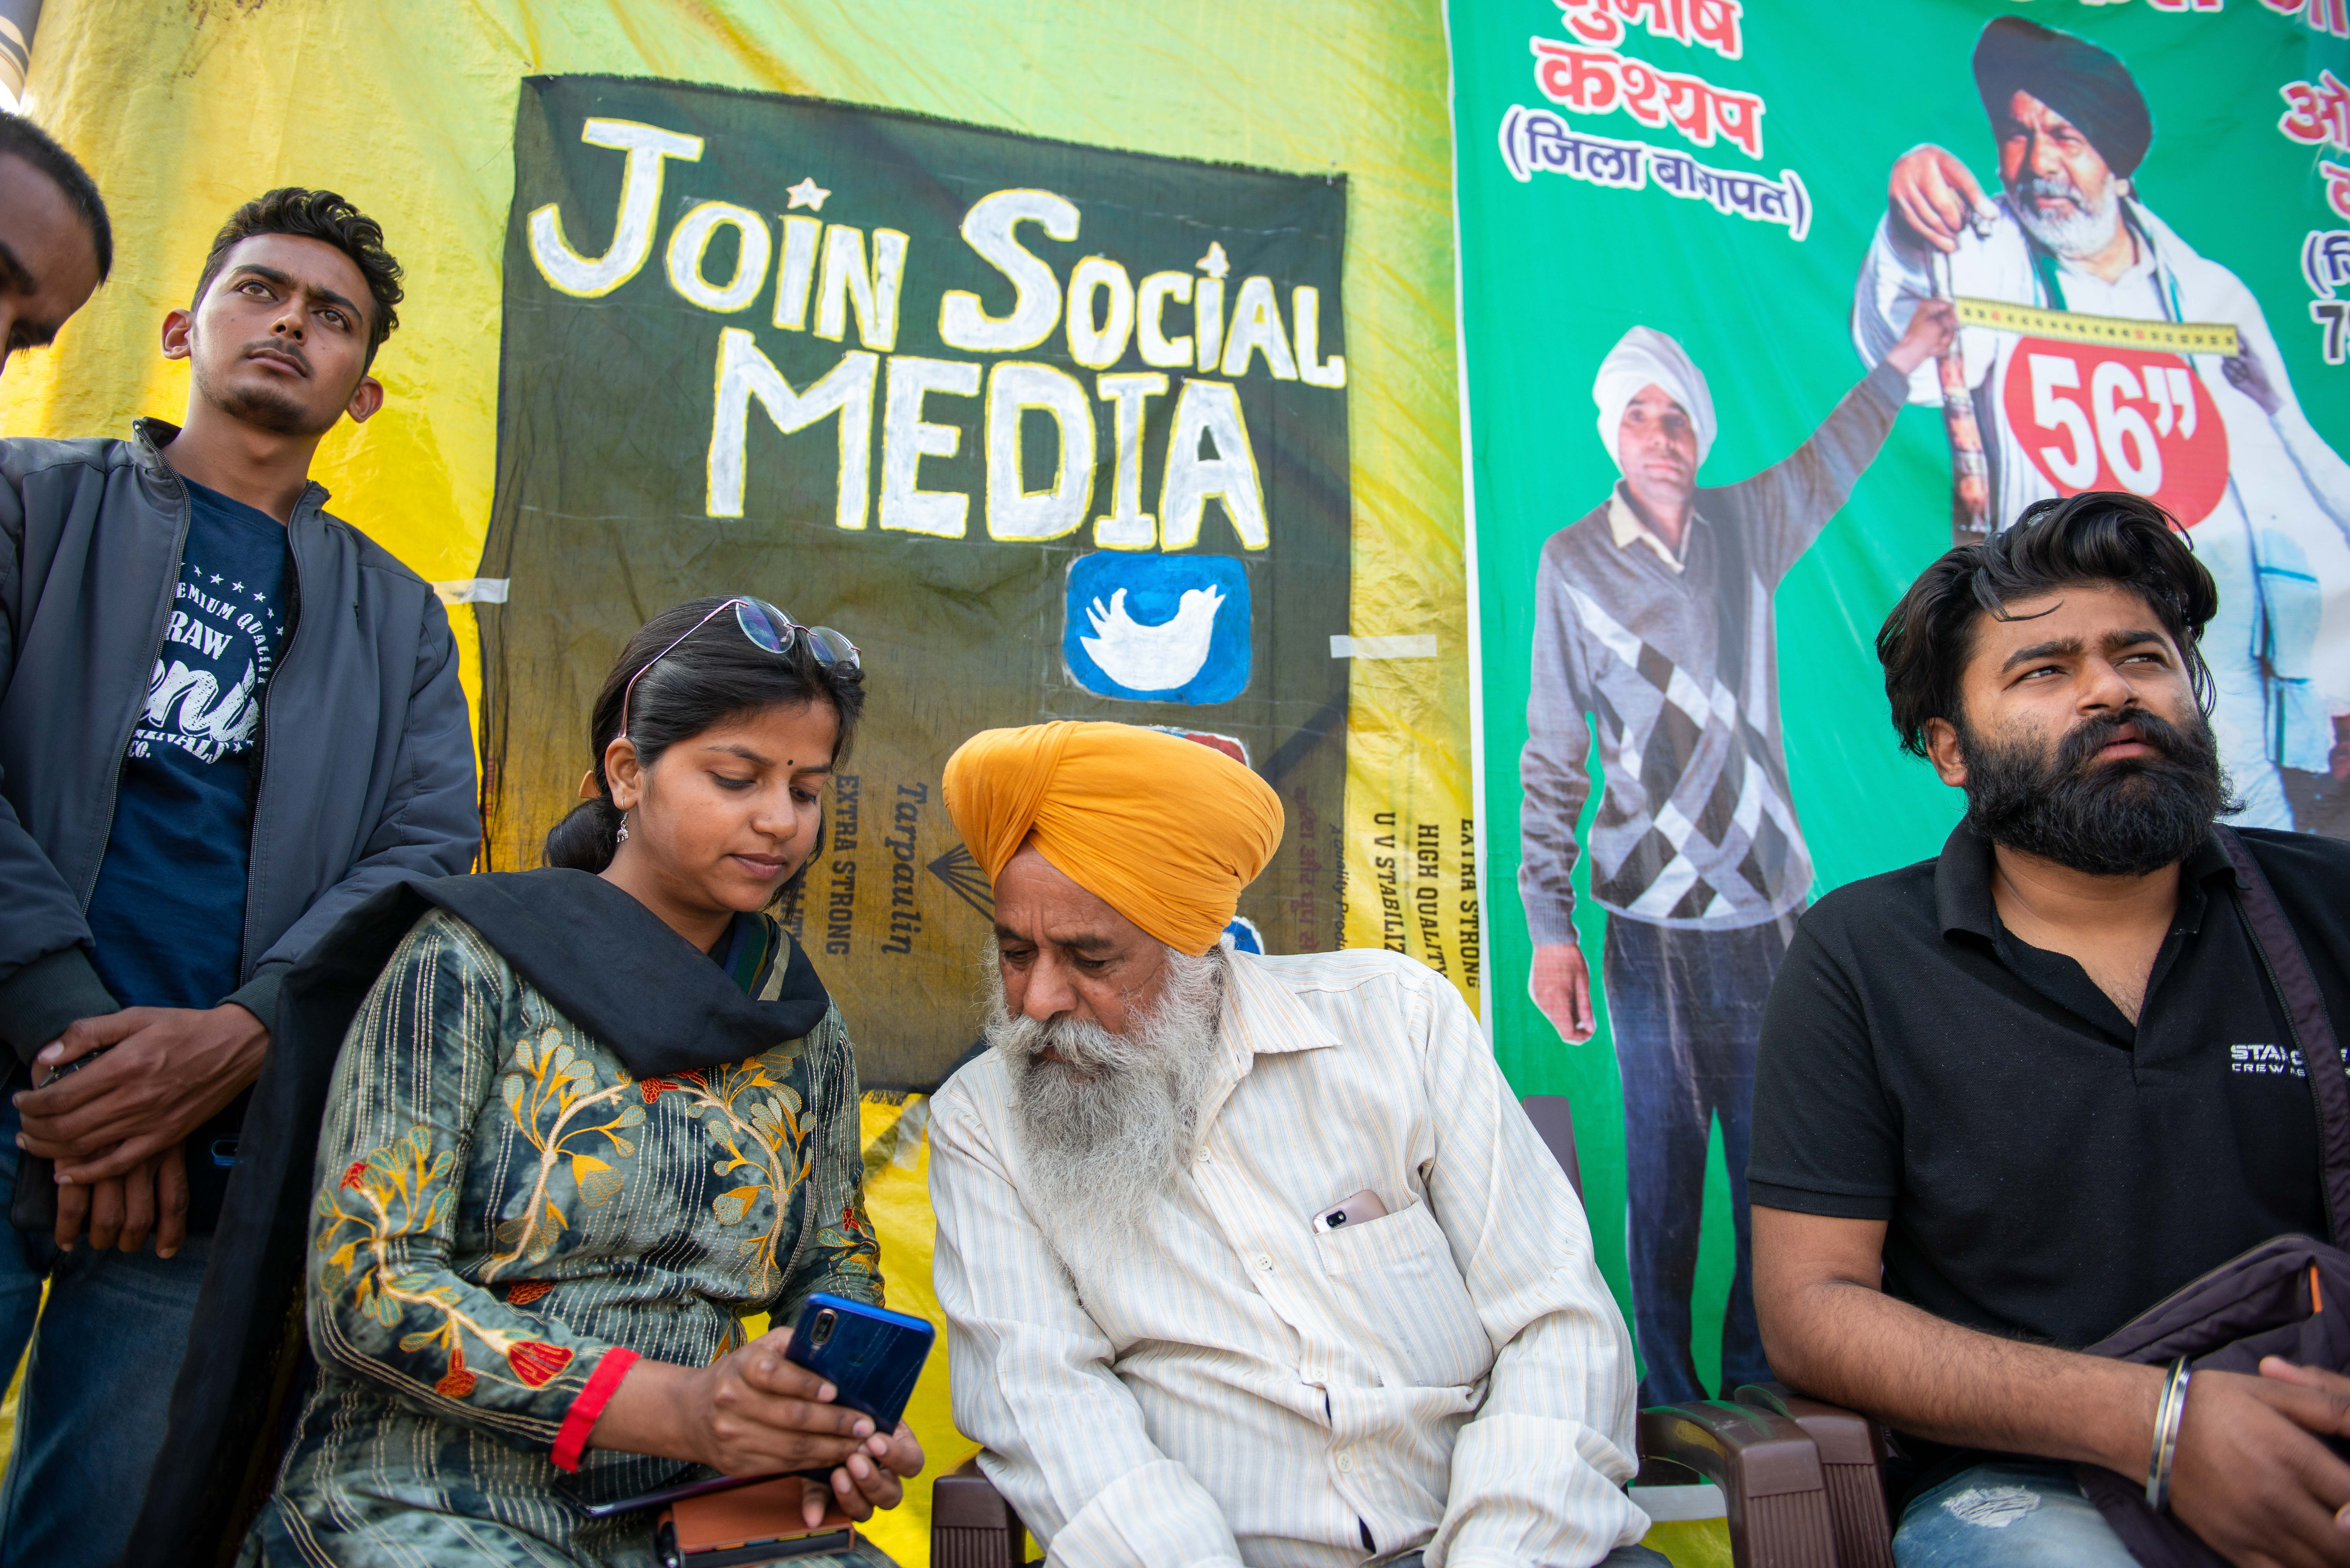 Member of All India student Federation seen teaching farmers about social media, for counter attack on government through social media during the demonstration. Farmers continue with their demonstration for the 83rd day. thousands of farmers protest against the new three farm laws at Ghazipur border. (Photo by Pradeep Gaur / SOPA Images/Sipa USA)No Use Germany.